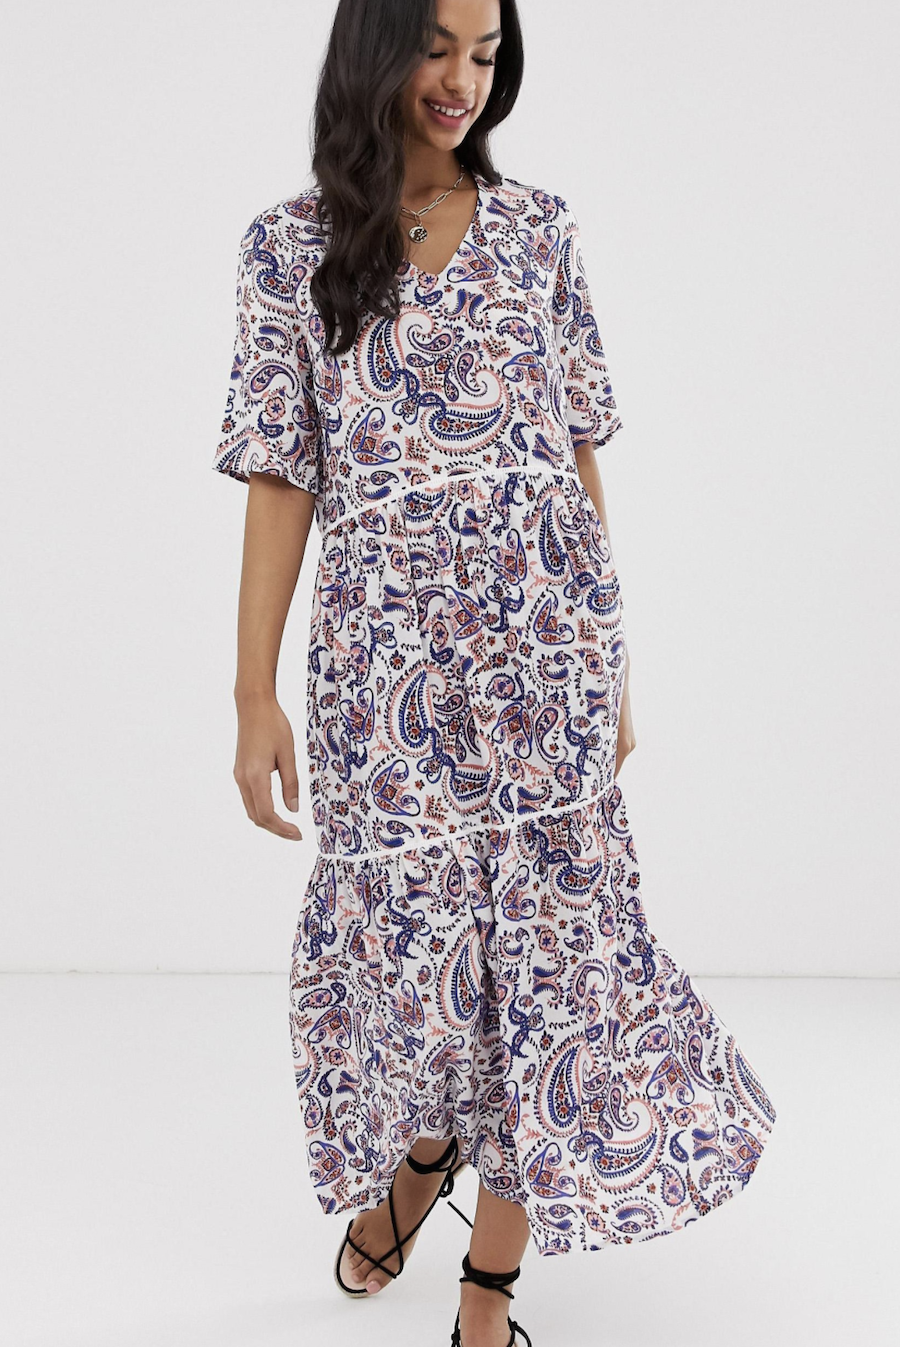 Long dress with ruffles and cashmere print by Y.A.S